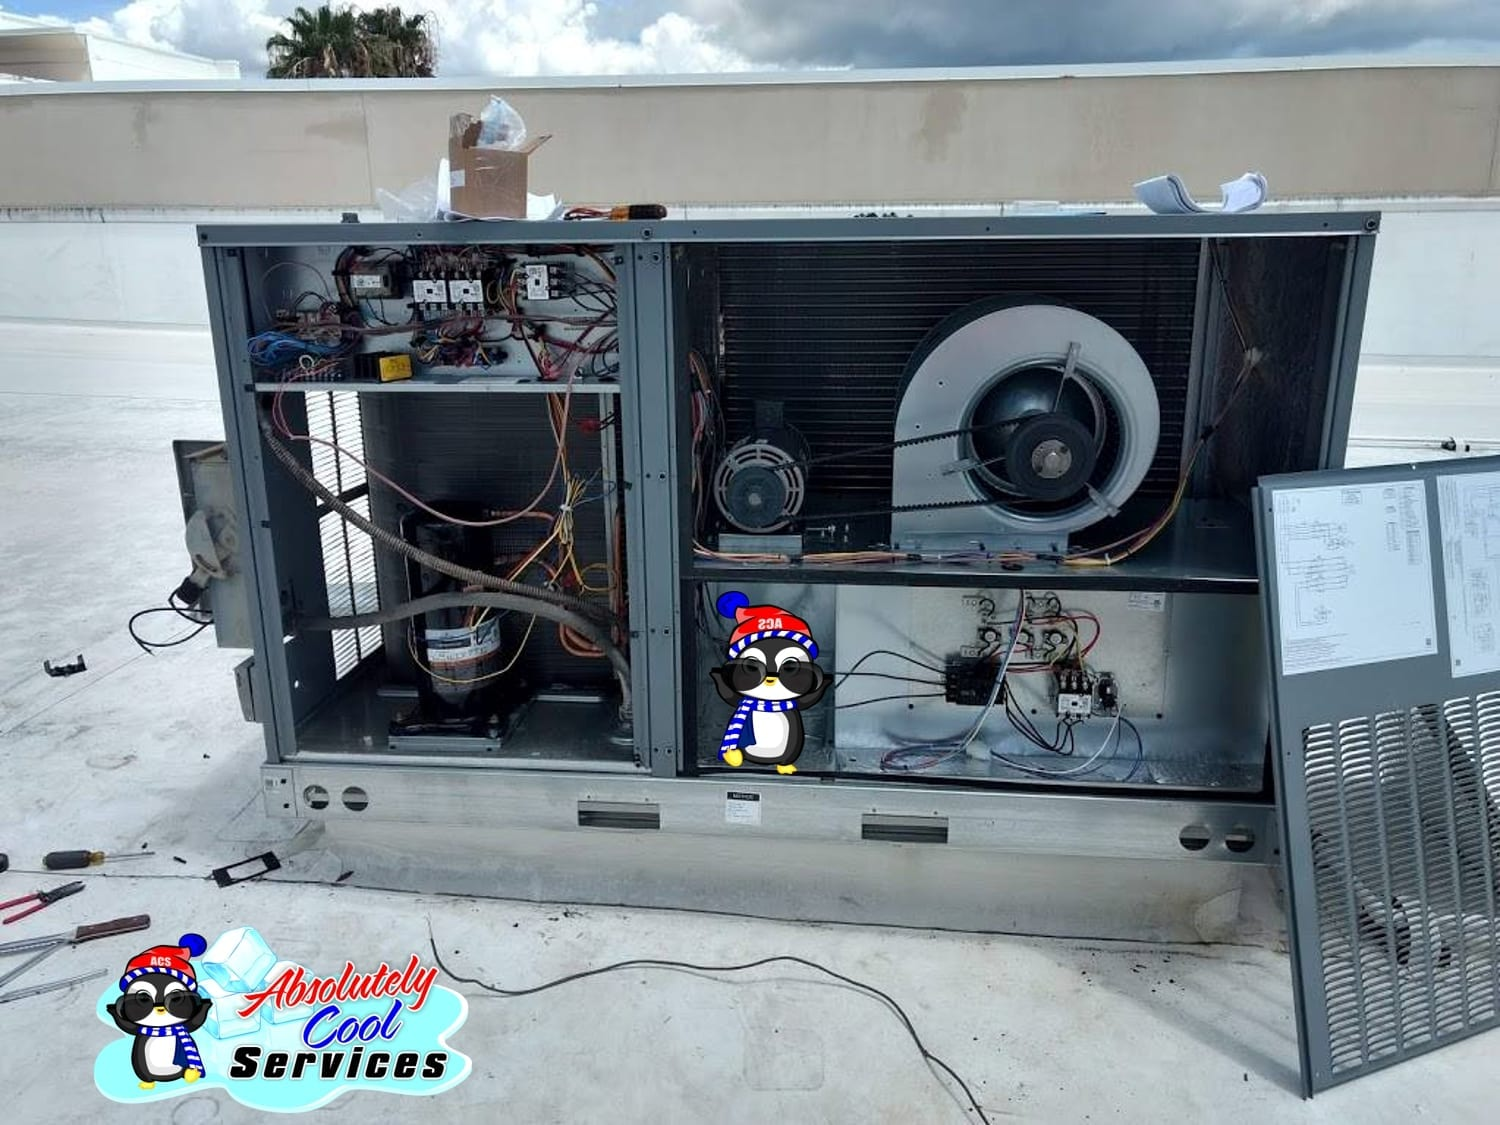 Roof Air Conditioning | Emergency Air Conditioning Duct Work Service near Jupitor